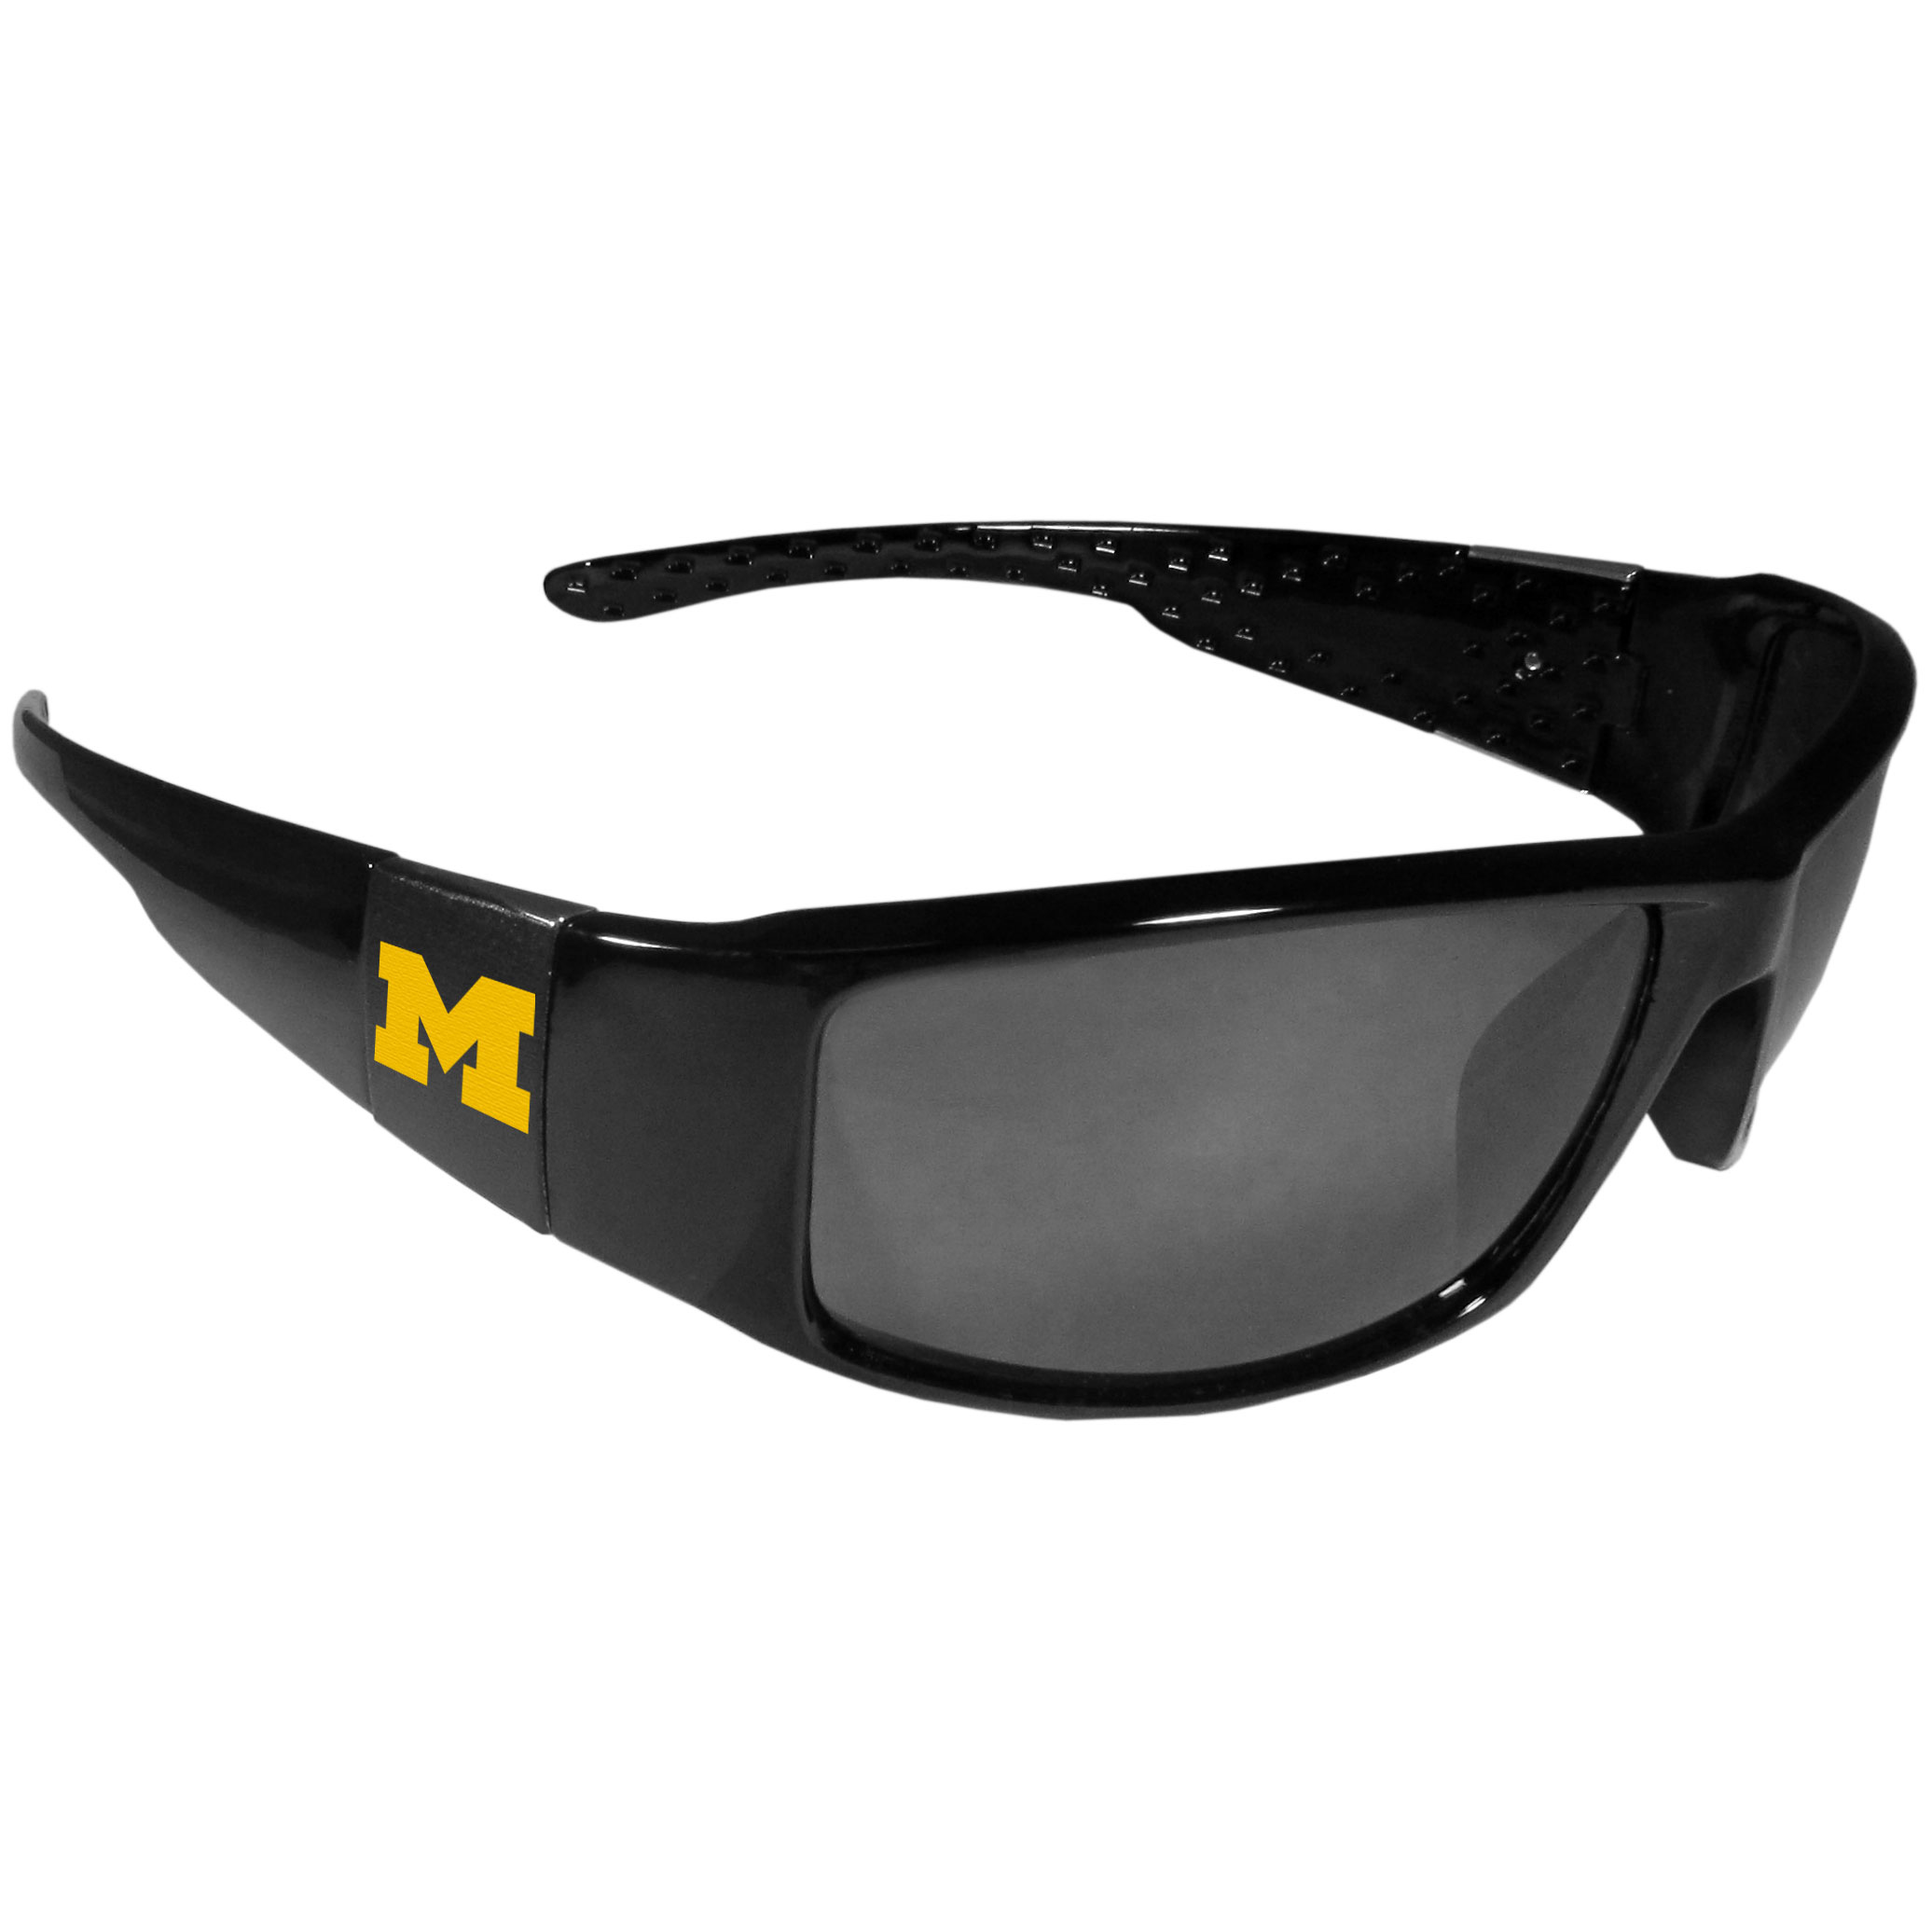 Michigan Wolverines Black Wrap Sunglasses - These designer inspired frames have a sleek look in all black with  Michigan Wolverines shields on each arm with a printed logo. The shades are perfect for any outdoor activity like; golfing, driving, hiking, fishing or cheering on the team at a tailgating event or at a home game day BBQ with a lens rating of 100% UVA/UVB for maximum UV protection. The high-quality frames are as durable as they are fashionable and with their classic look they are the perfect fan accessory that can be worn everyday for every occasion.